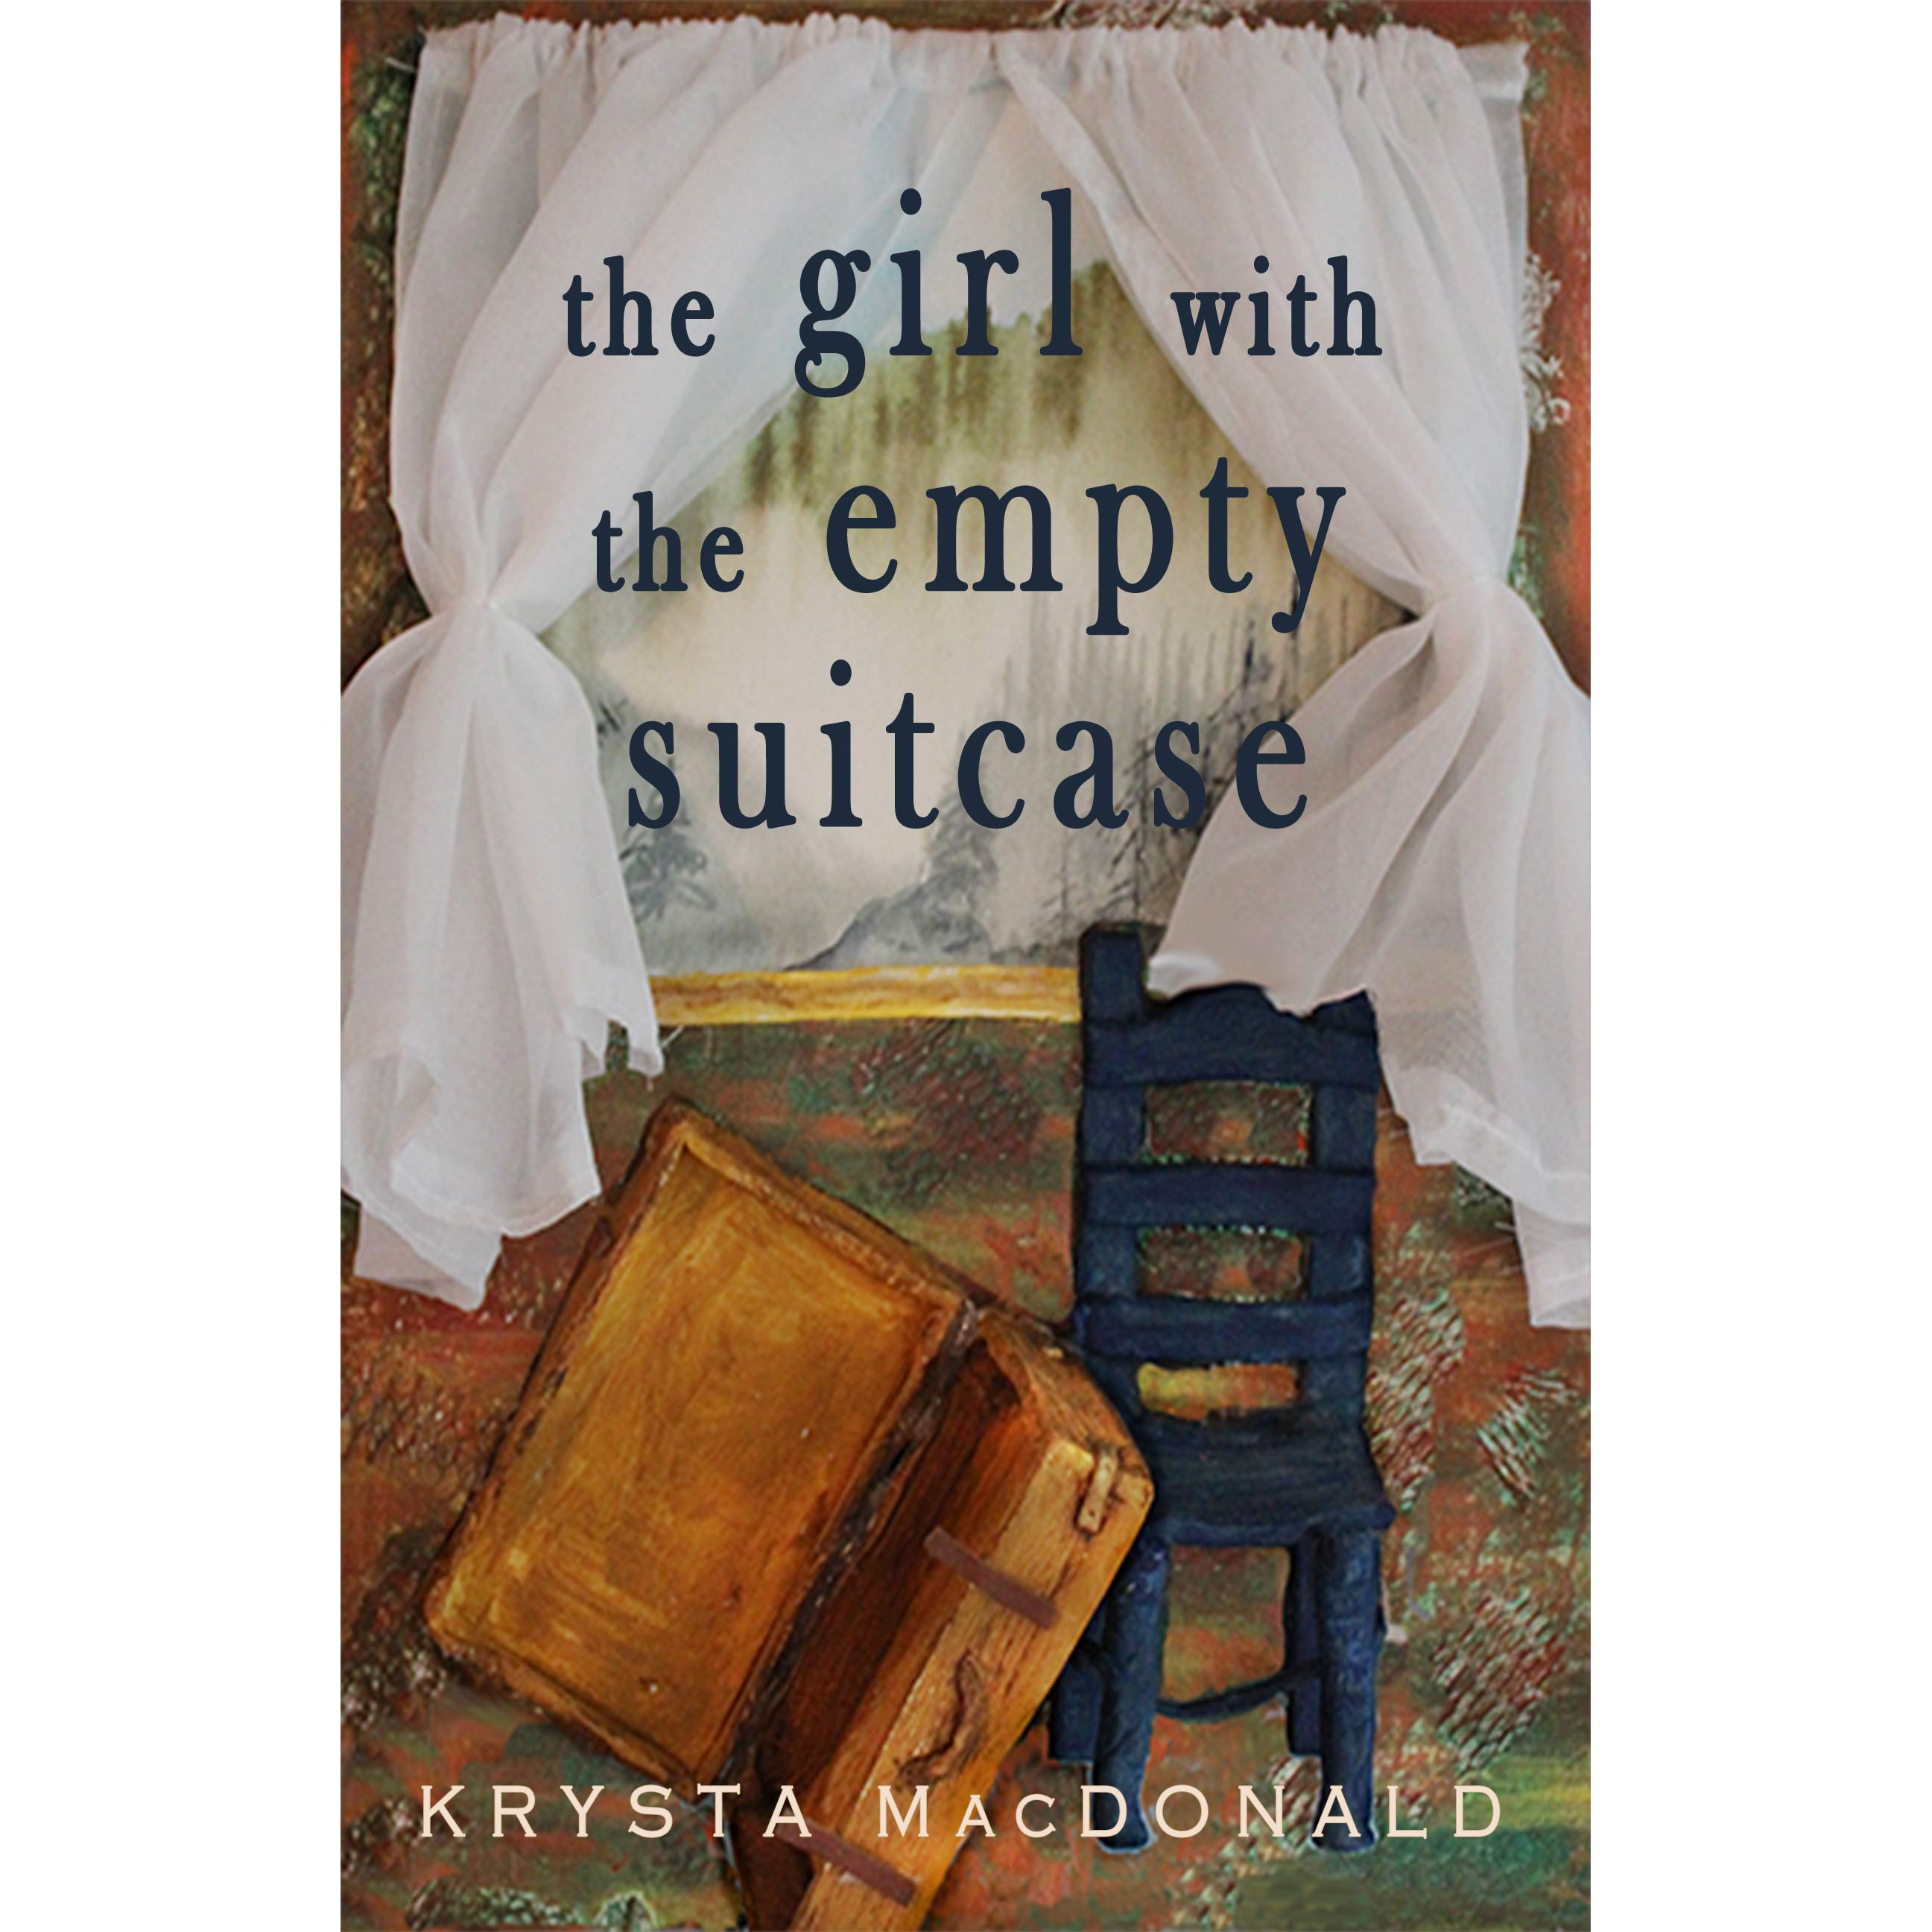 the girl with the empty suitcase